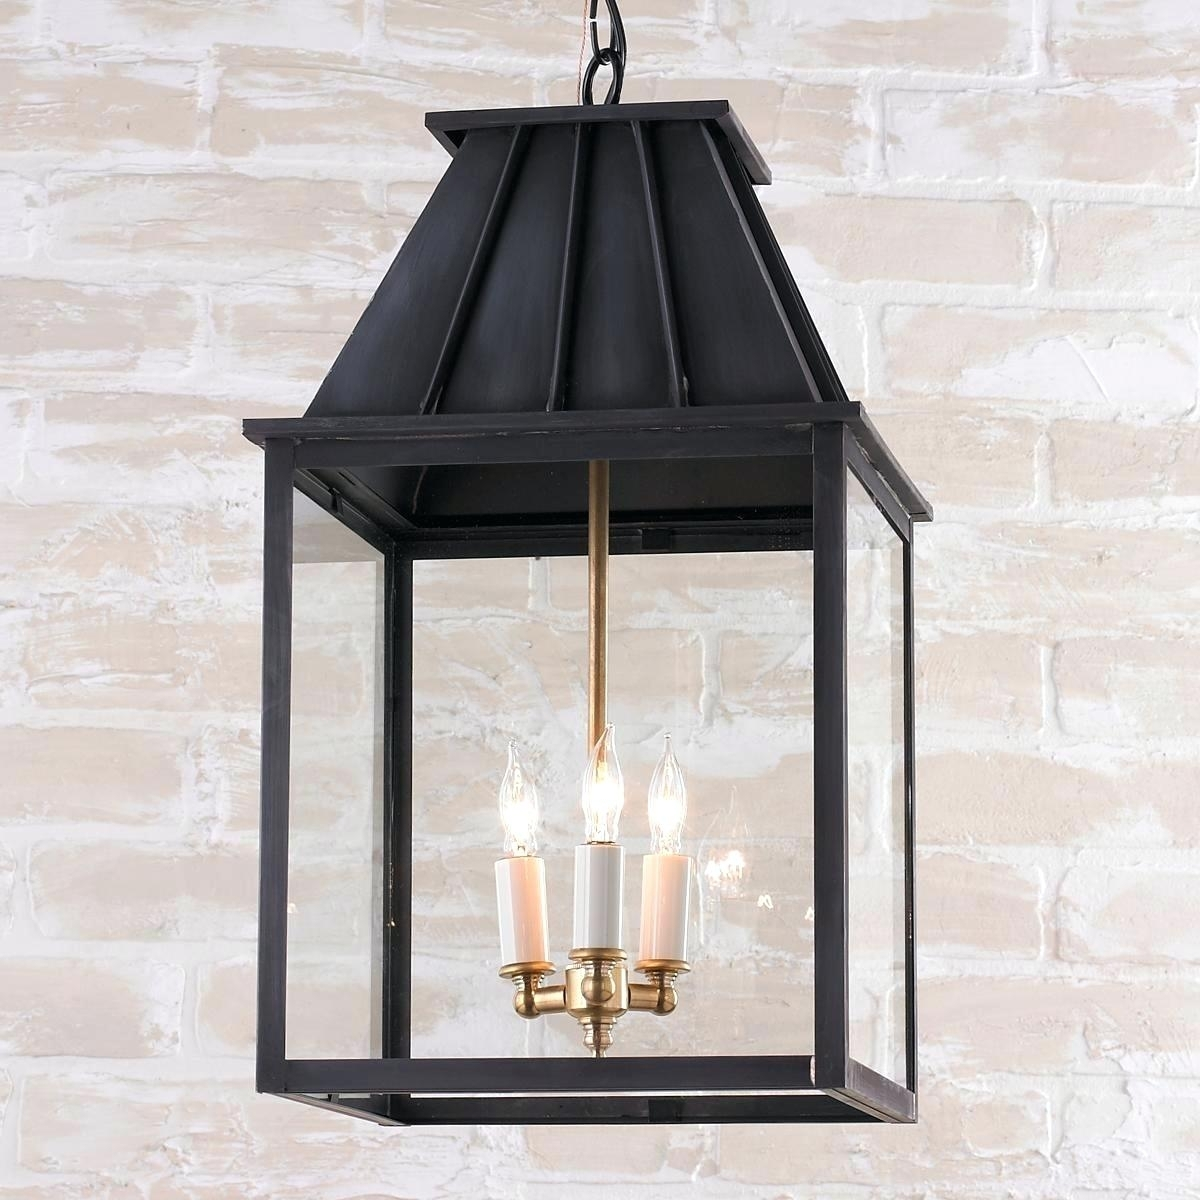 Outdoor Hanging Lanterns Battery Operated Solar On Sale Lamp For Outdoor Hanging Lanterns With Battery Operated (#11 of 15)